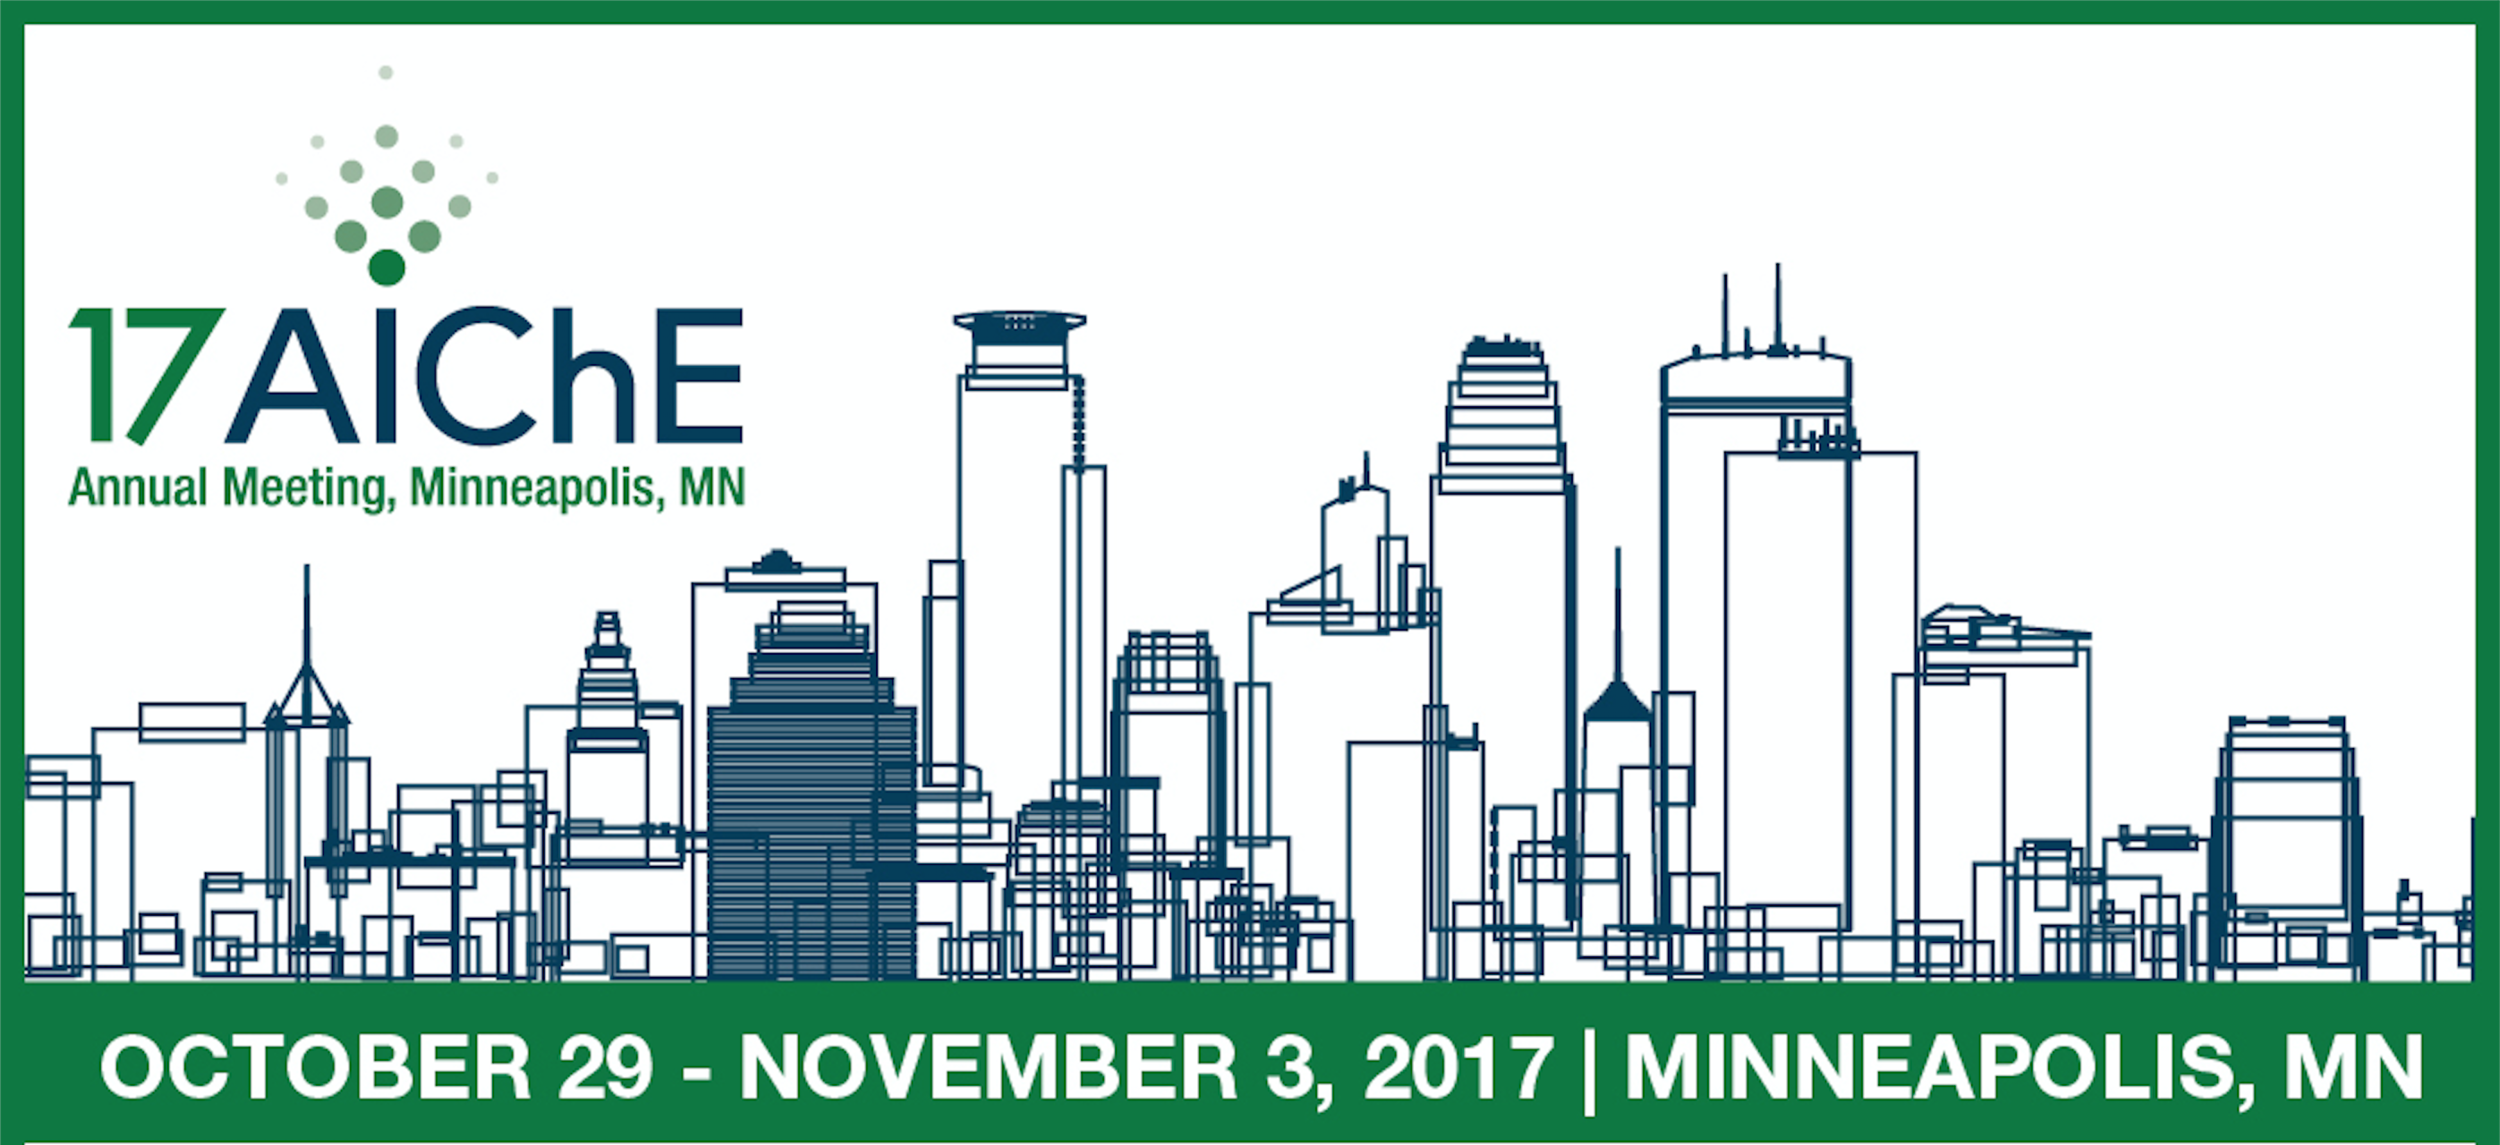 Habiba presented at the Annual Meeting of the American Institute of Chemical Engineers in Minneapolis in November 2017.